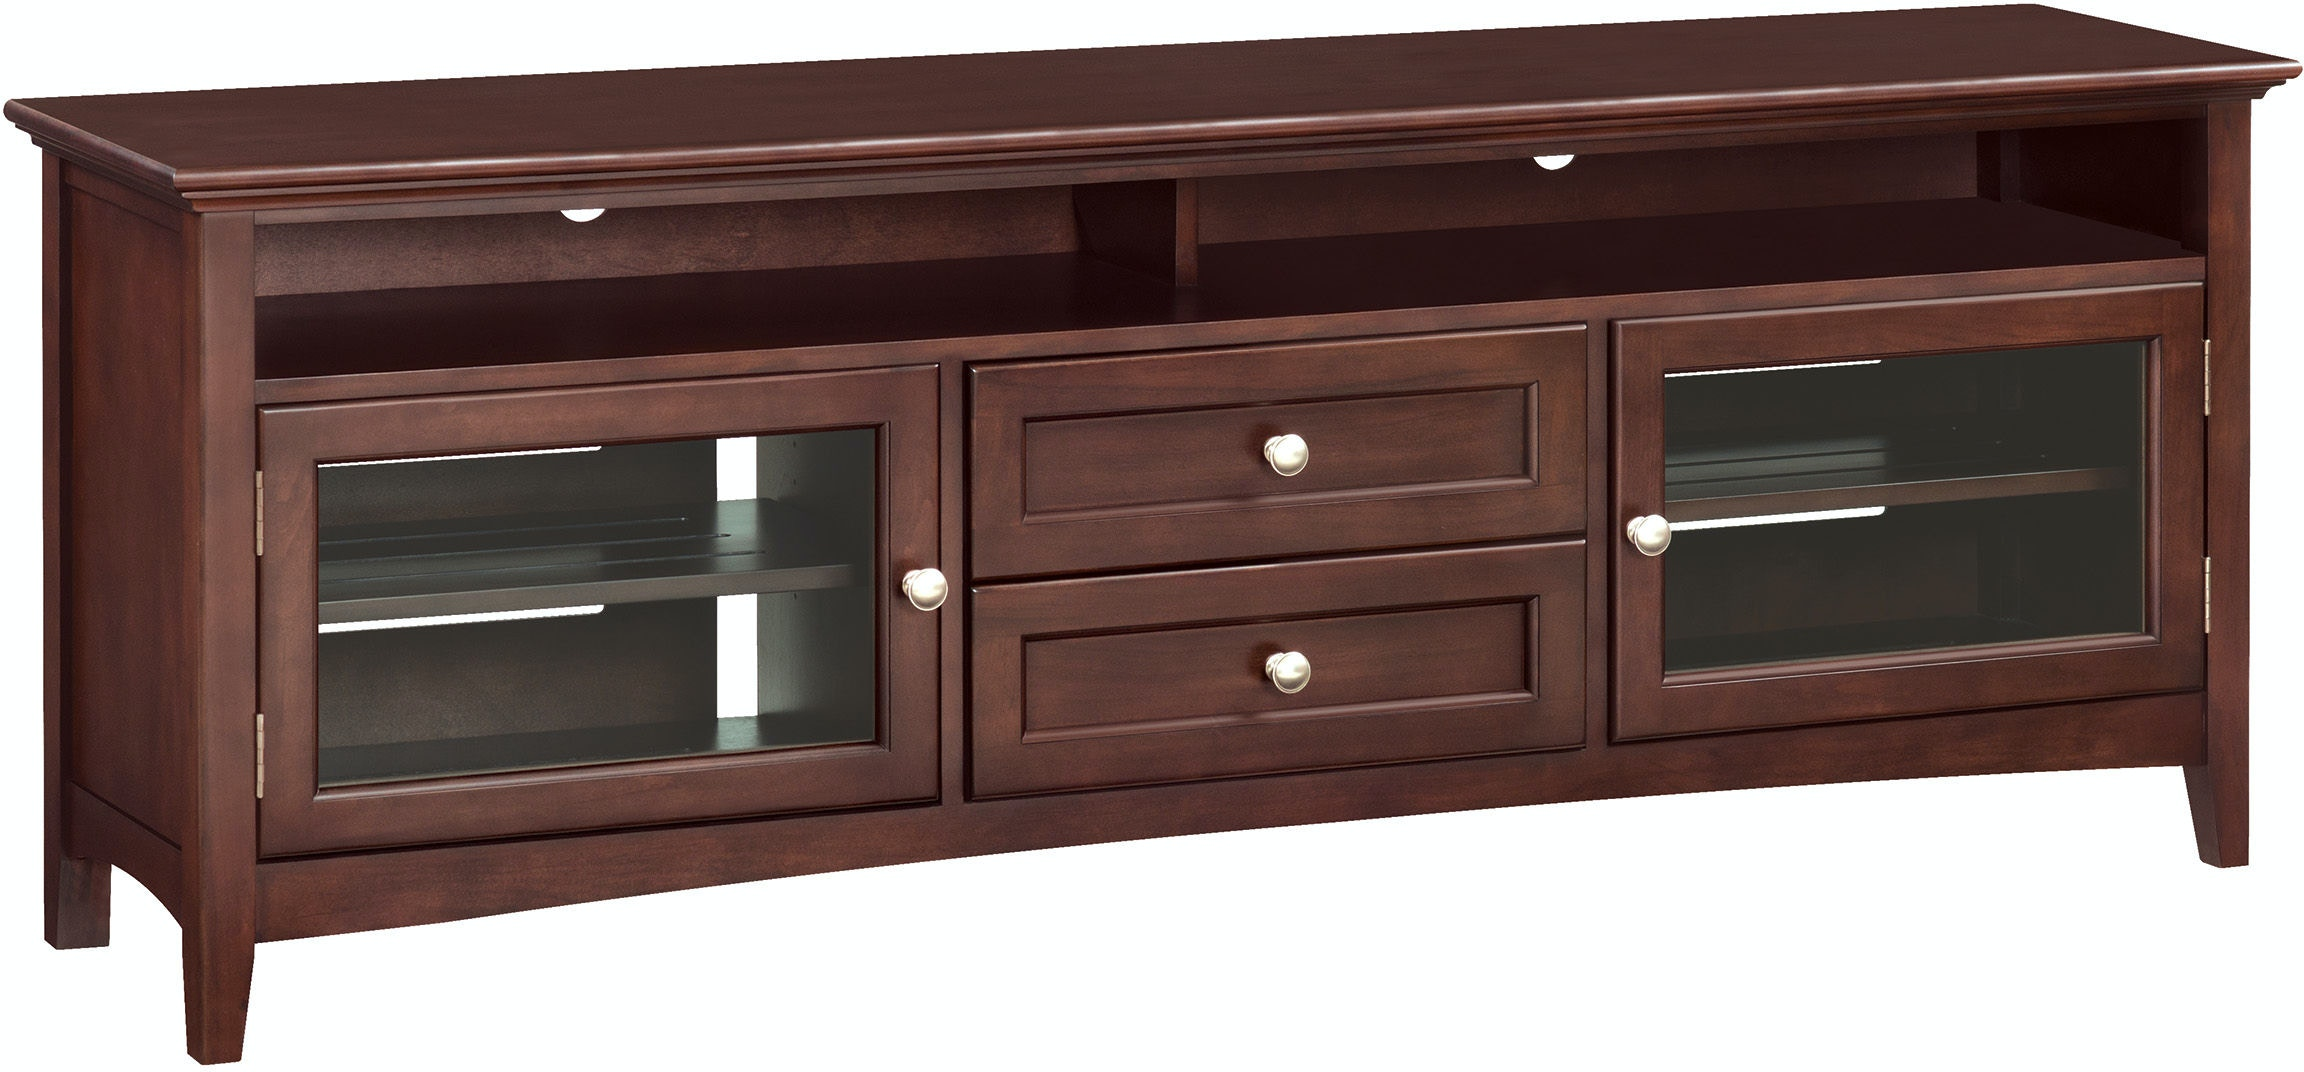 Whittier Wood Products Home Entertainment Caf 74 W